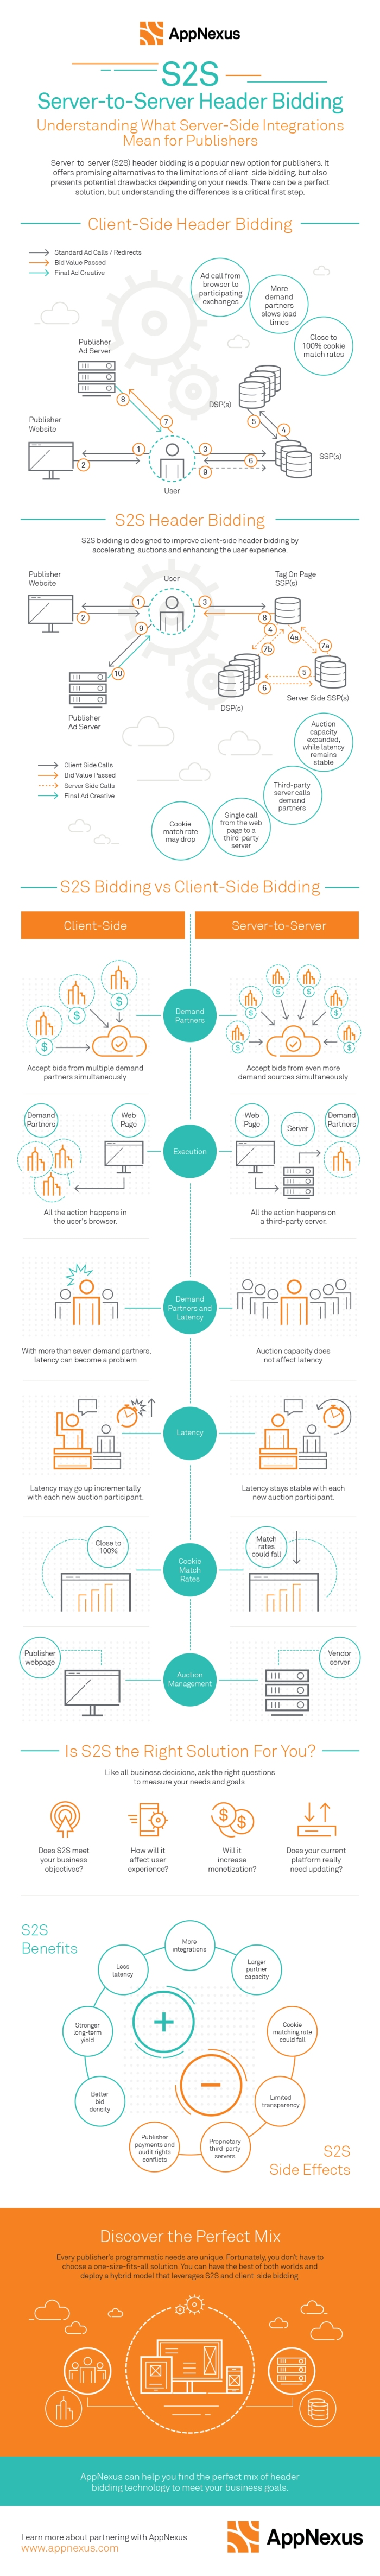 INFOGRAPHIC - AppNexus -Server to Server header bidding